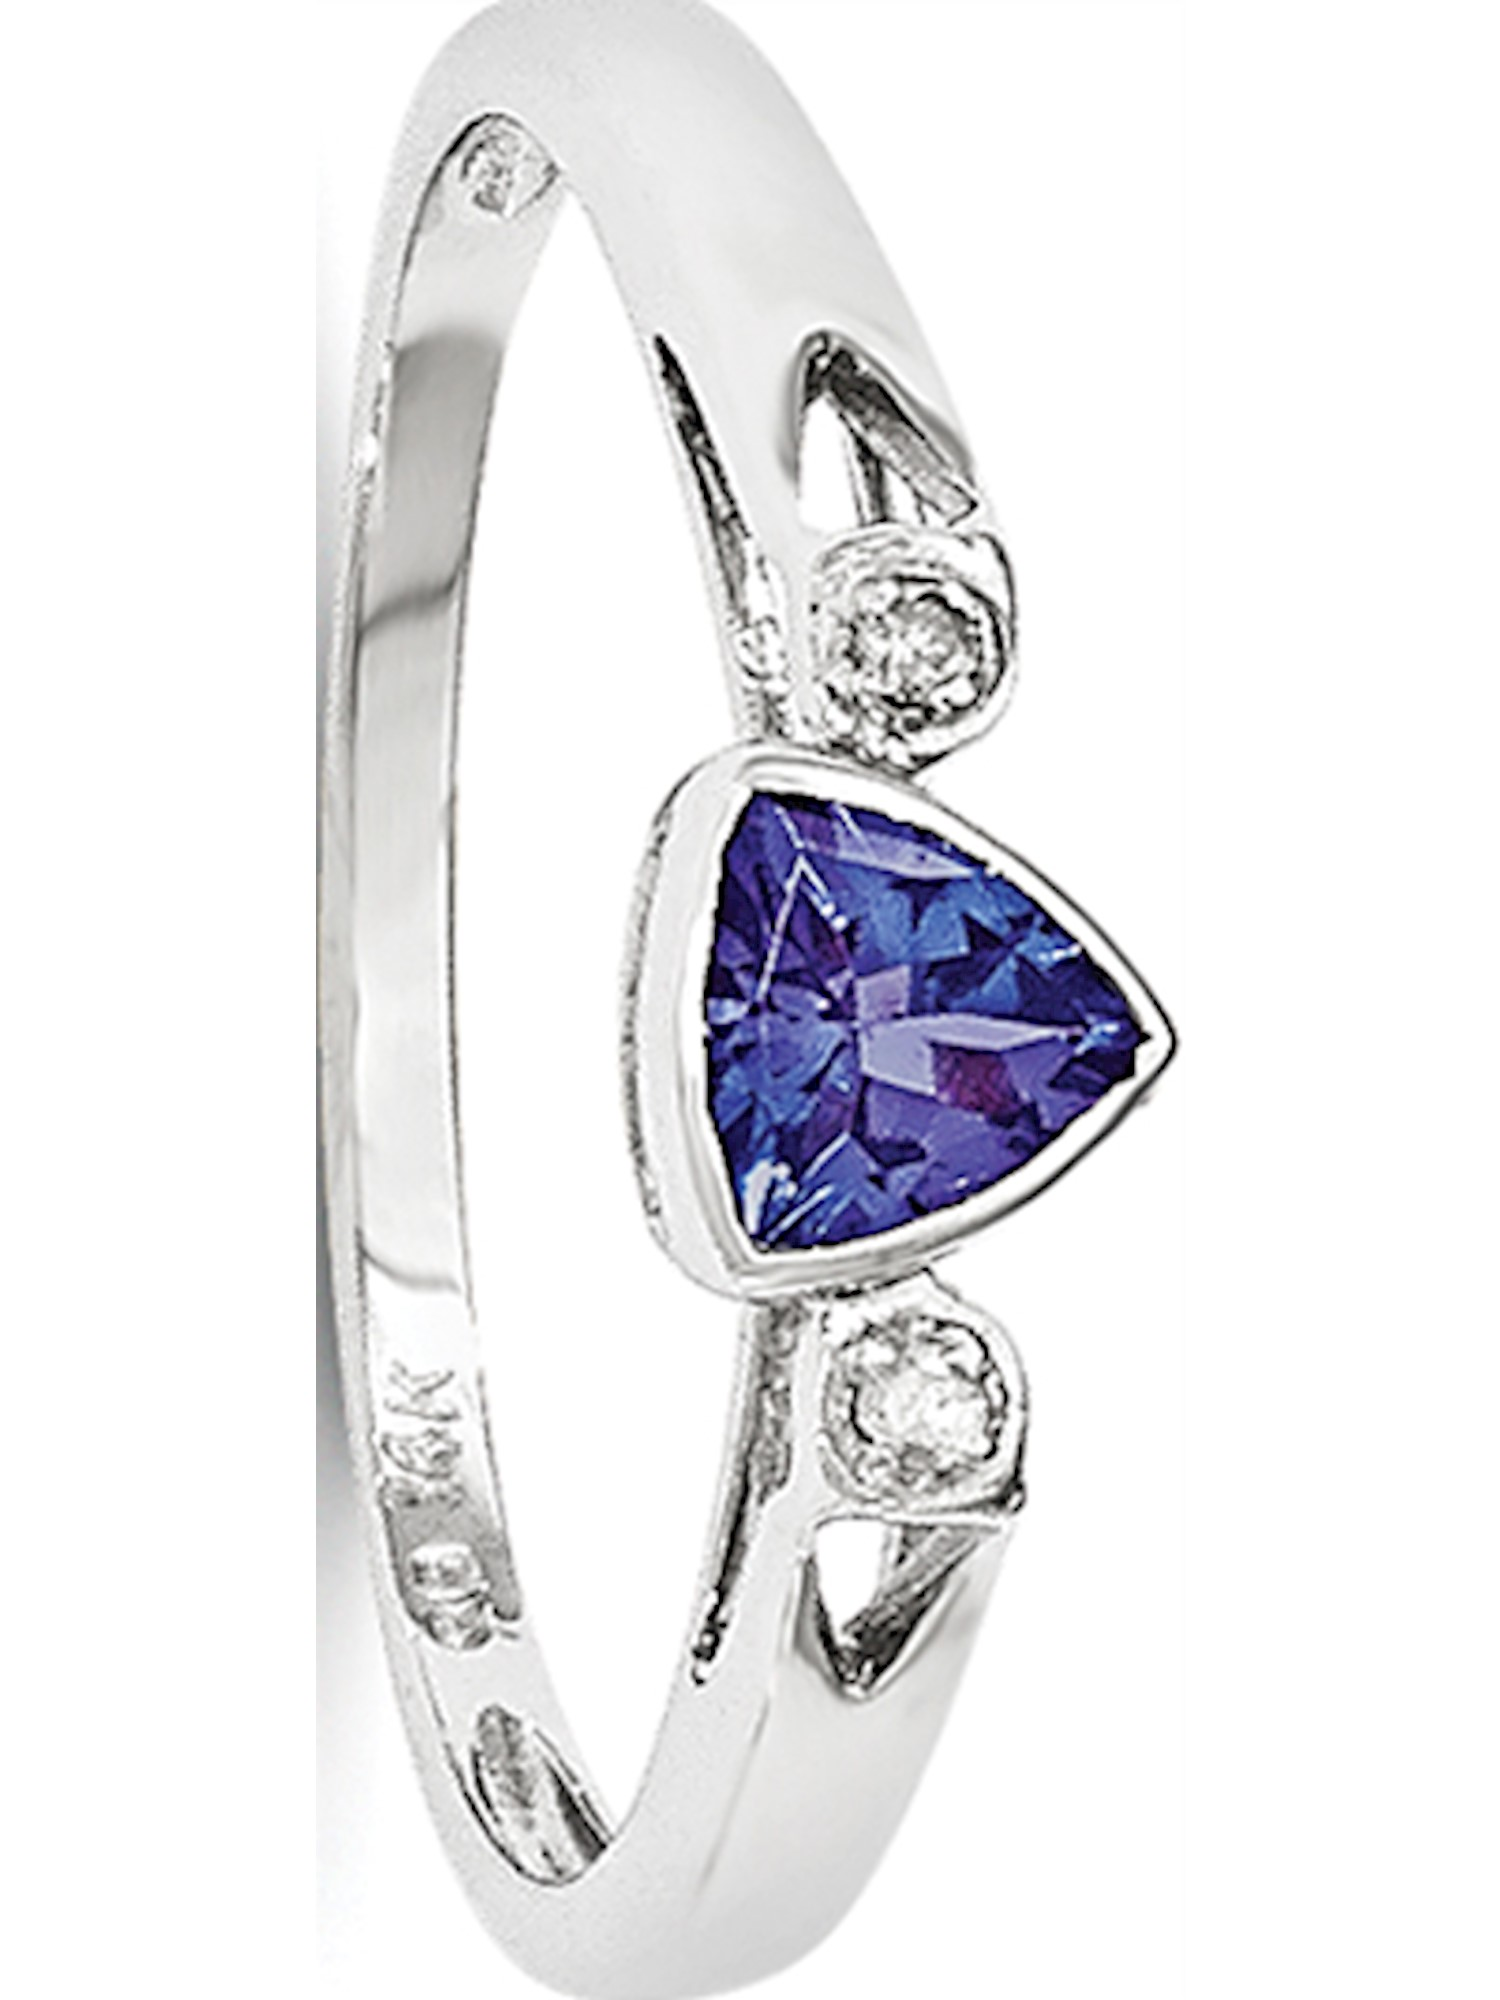 14k White Gold White Tanzanite and Diamond Ring by